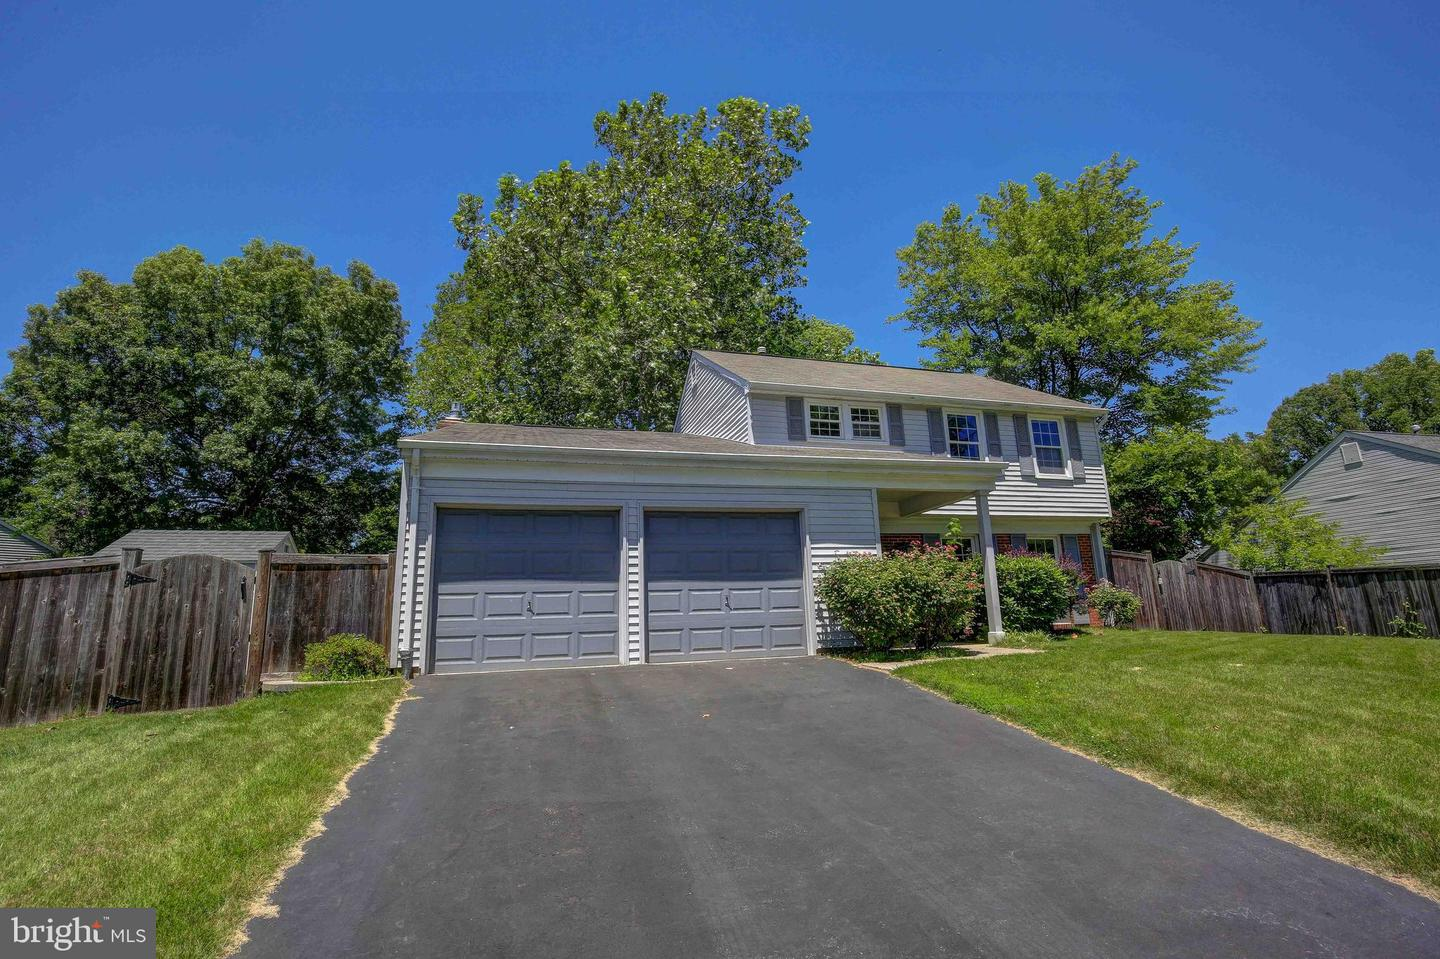 Additional photo for property listing at 1863 Harcourt Ave Crofton, Maryland 21114 United States